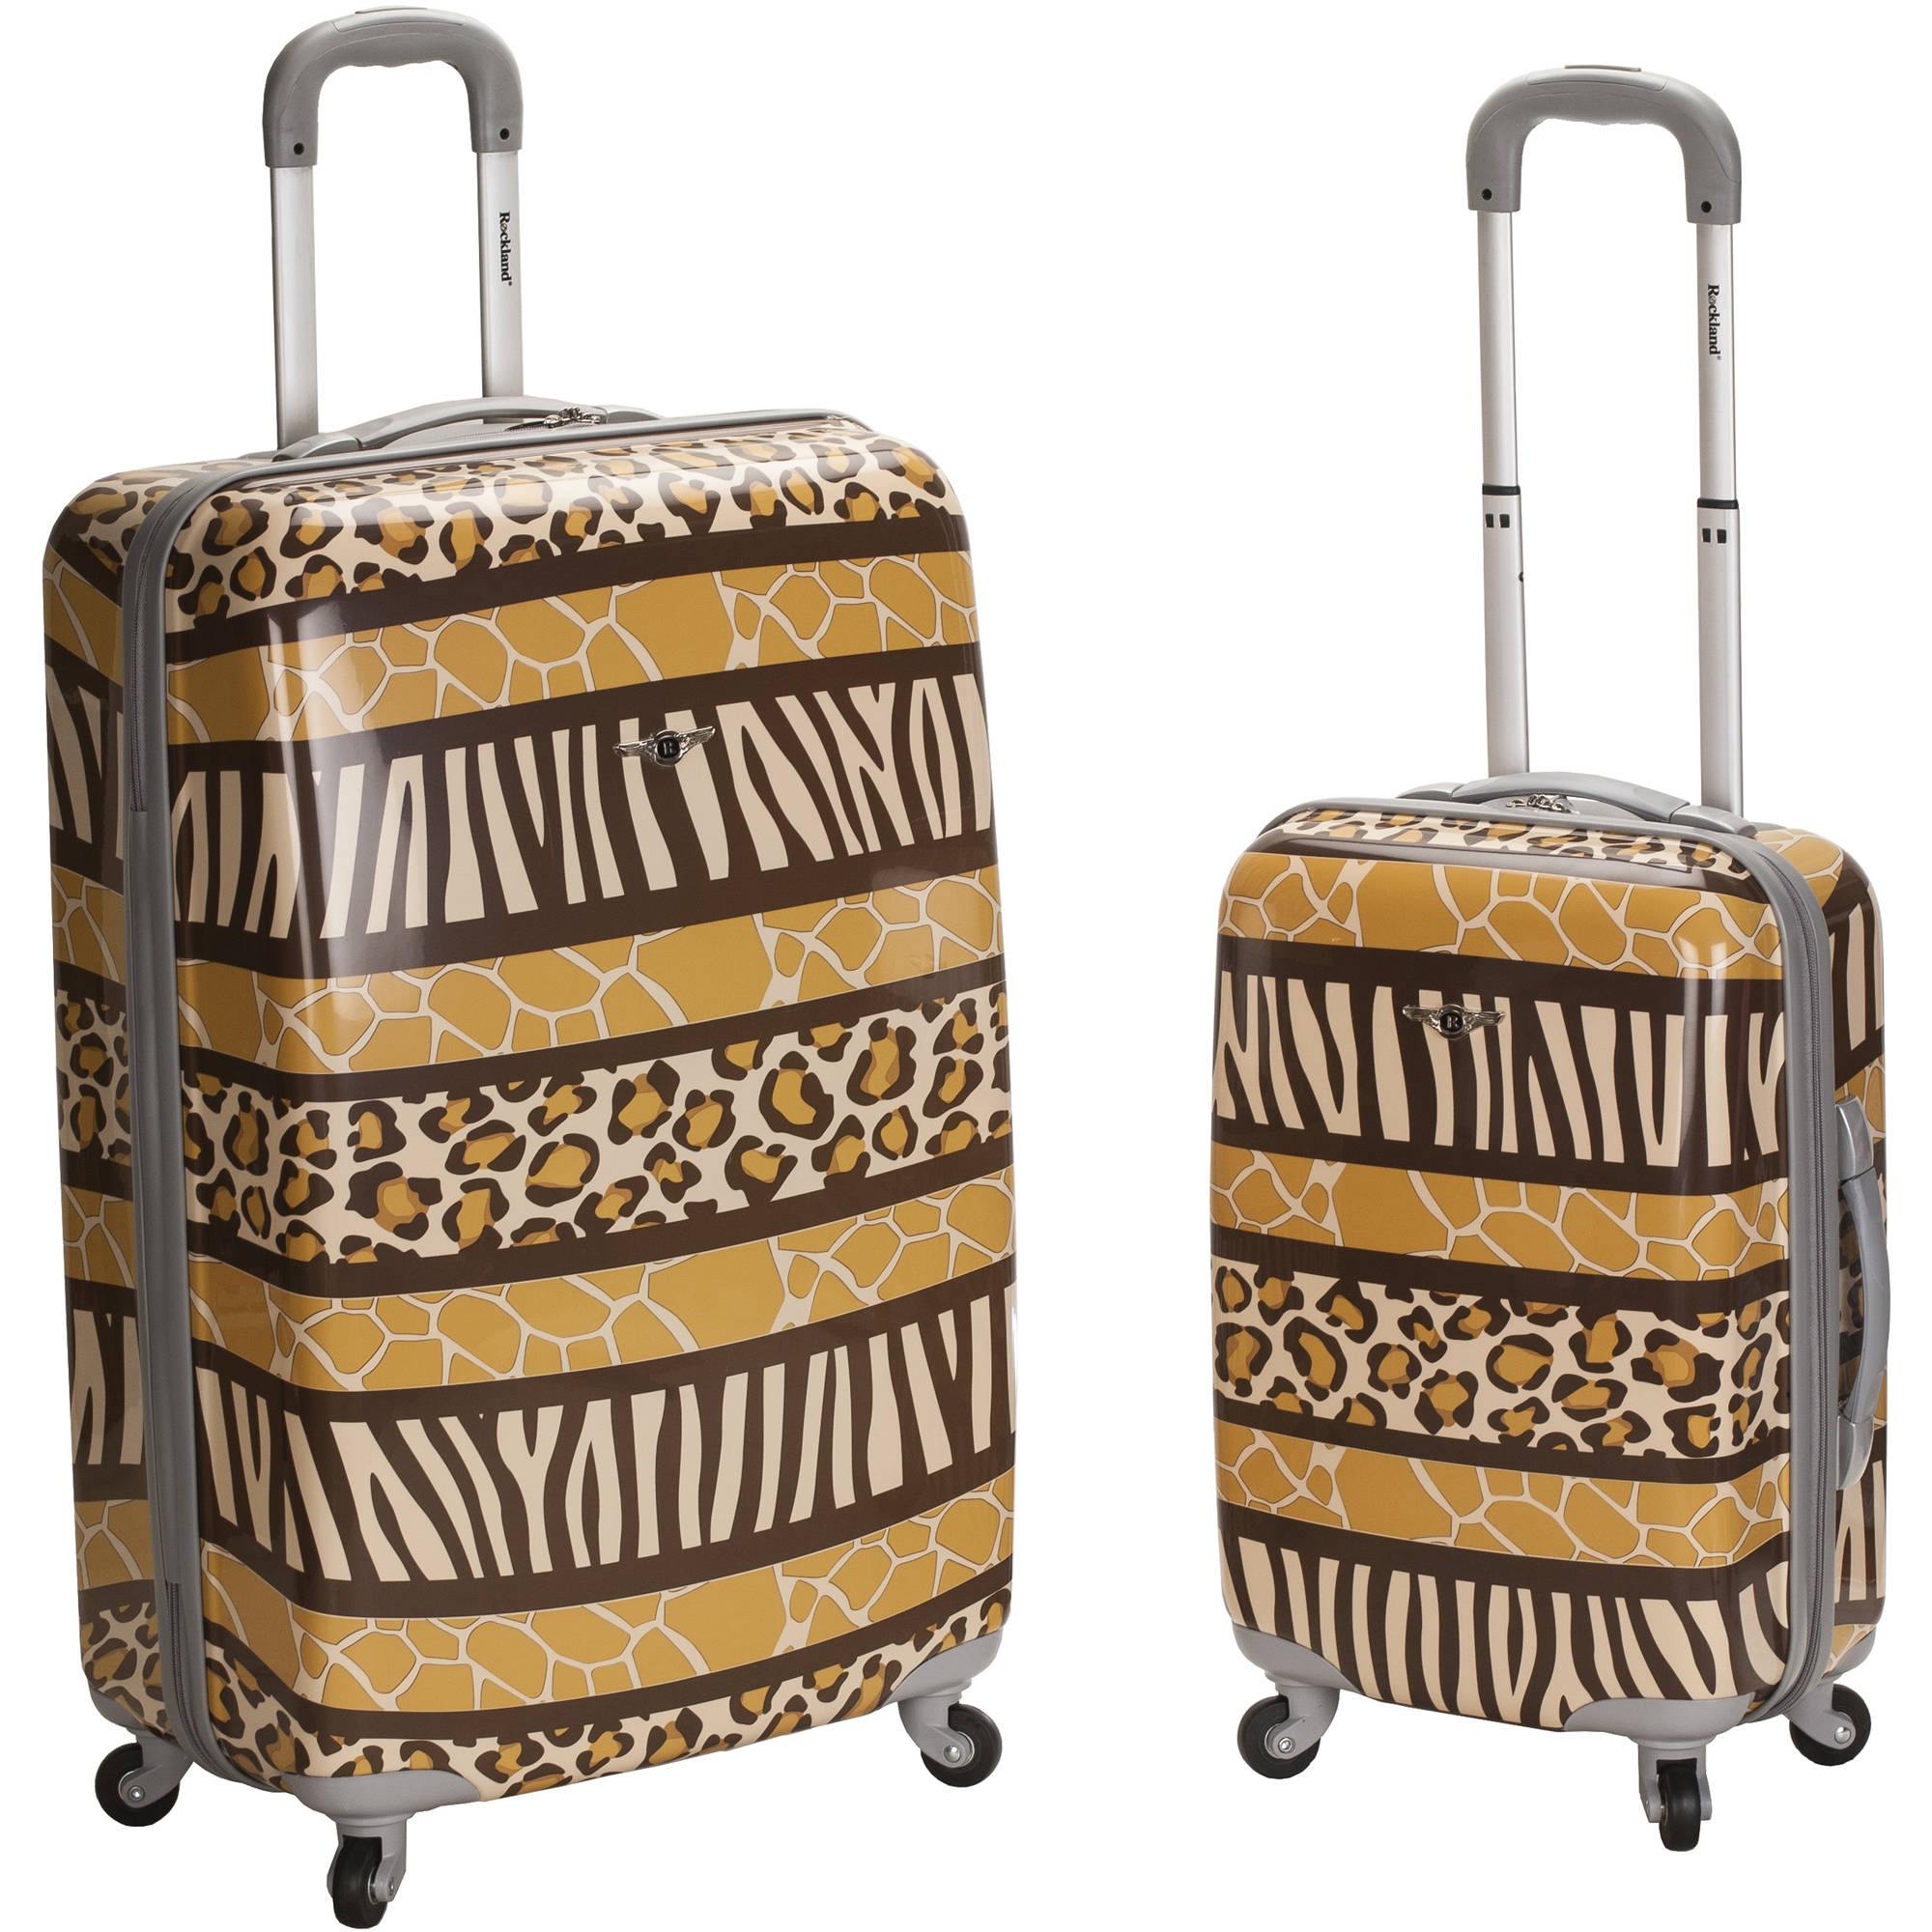 Rockland Luggage 2-Piece Polycarbonate/ABS Upright Set, Brown